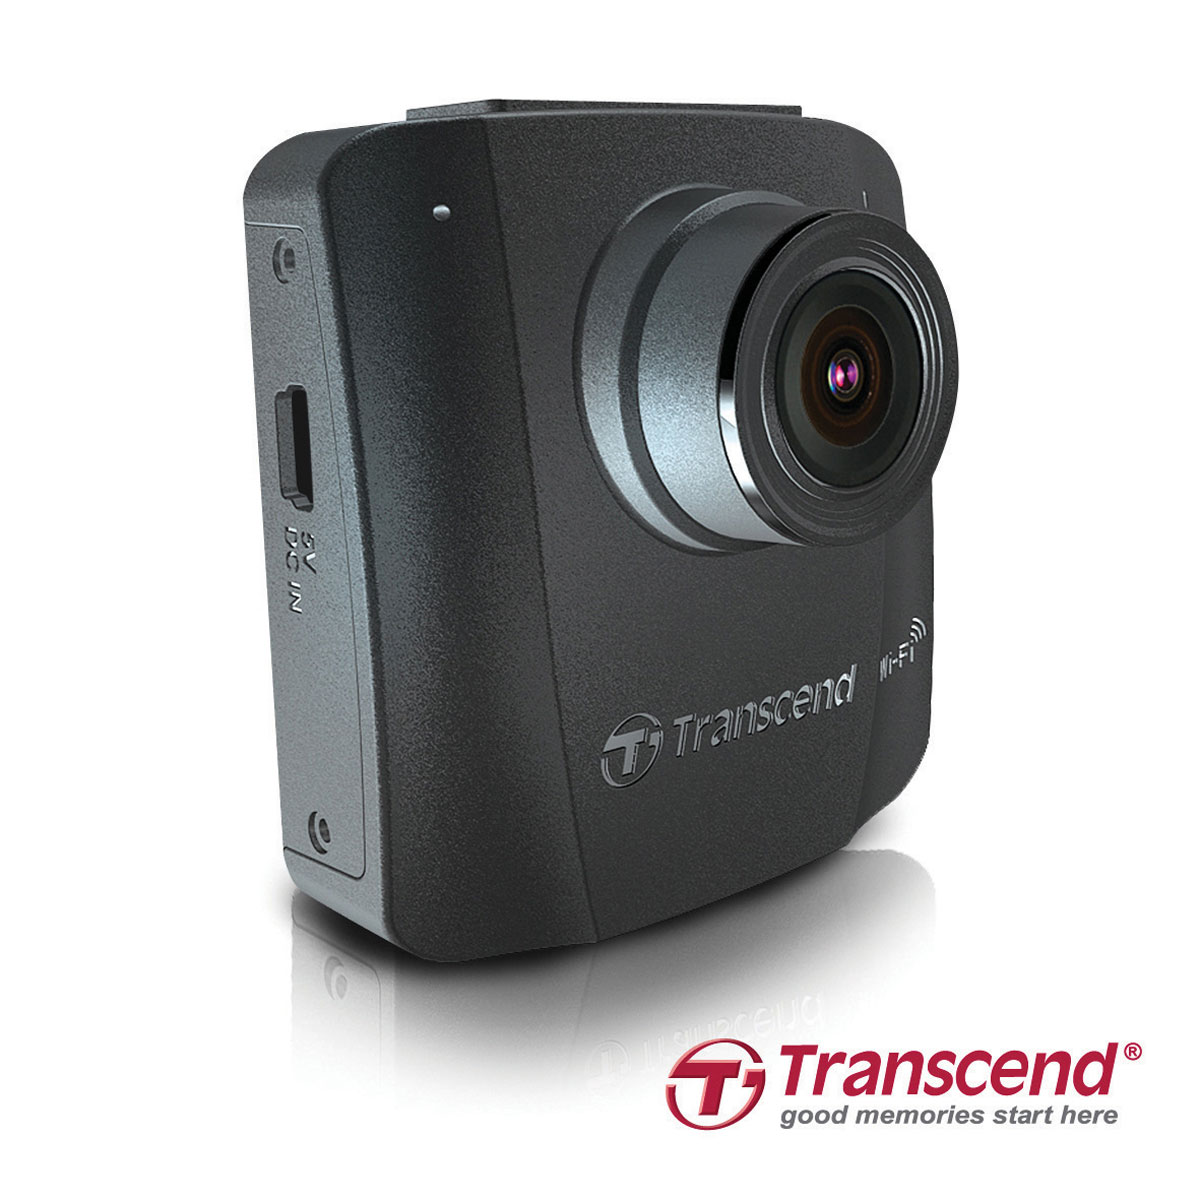 Transcend Introduces DrivePRO 50 Compact Dashcam